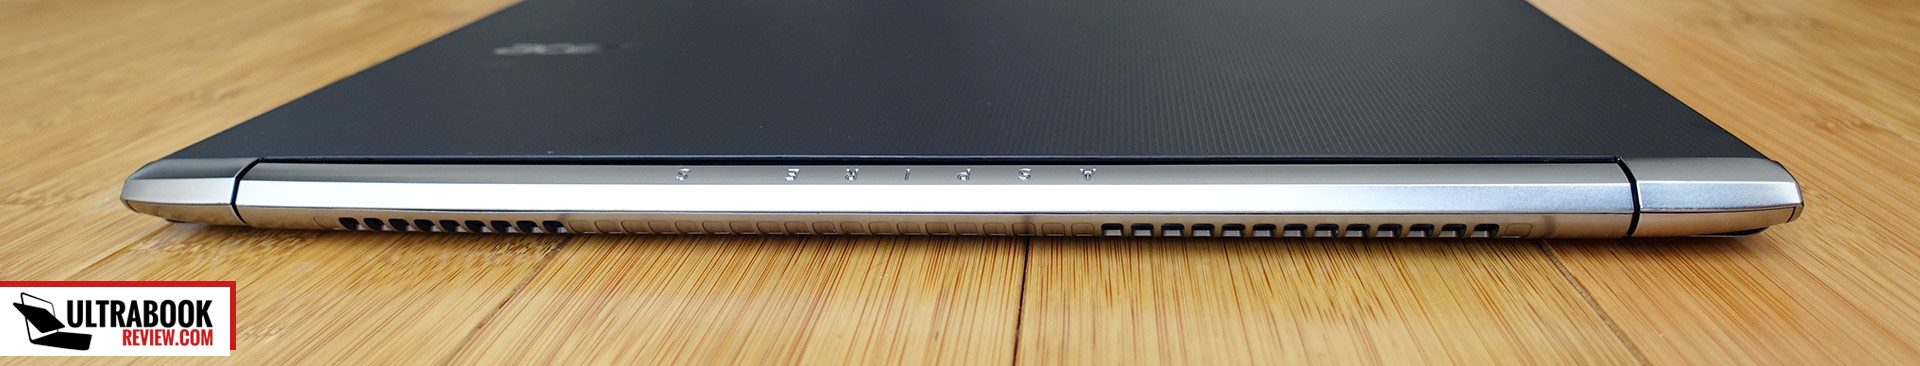 Acer Aspire S13 S5-371 review - solid and affordable 13-inch